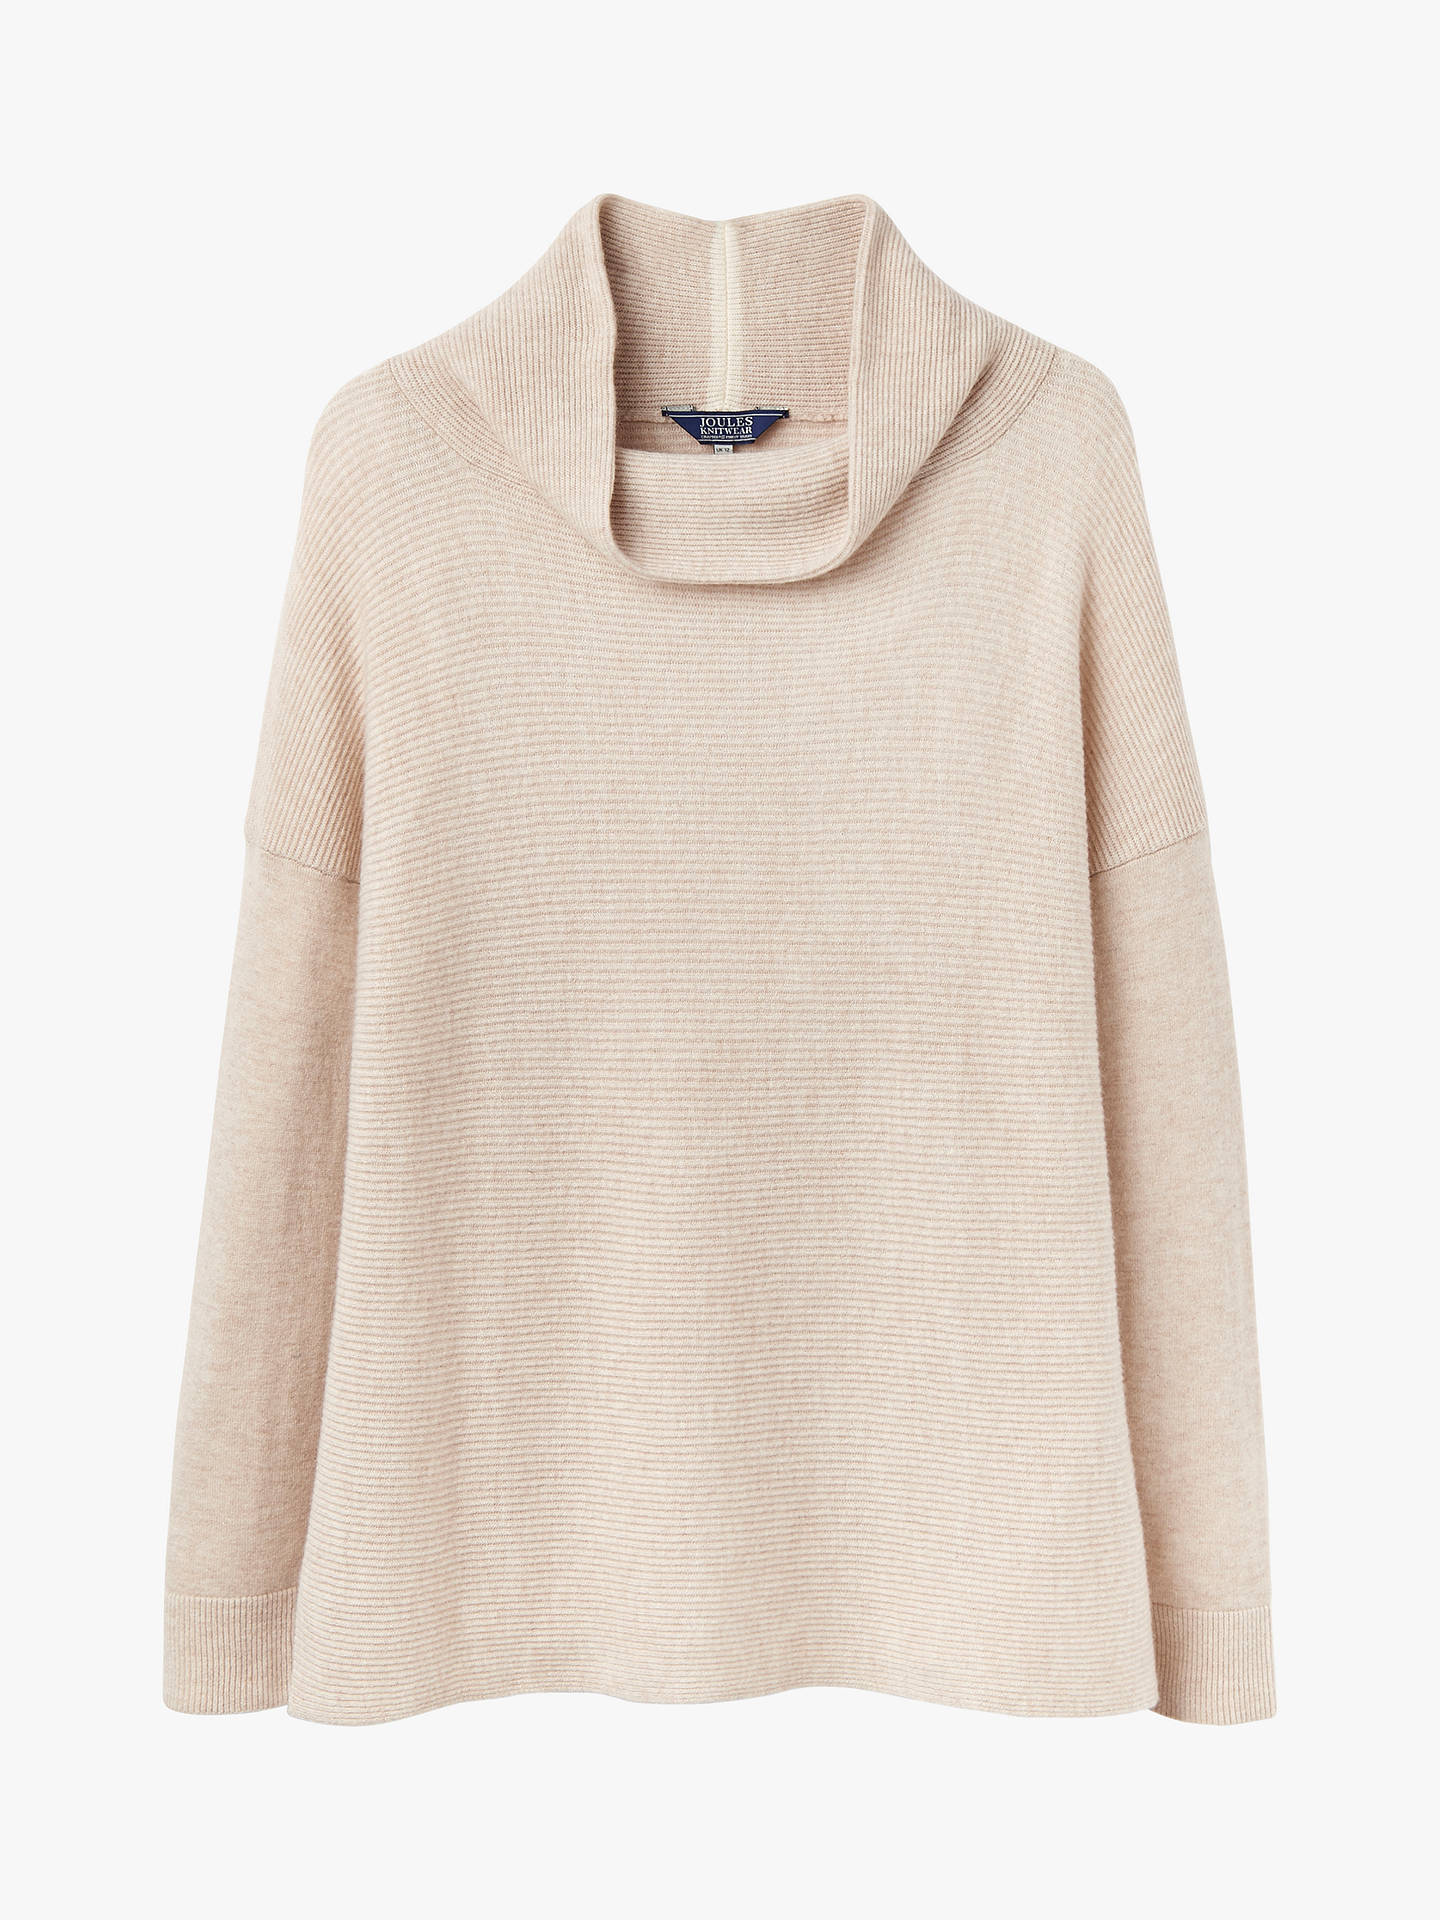 1c3f43cd2b8 Joules Euginia Ribbed Roll Neck Jumper at John Lewis & Partners